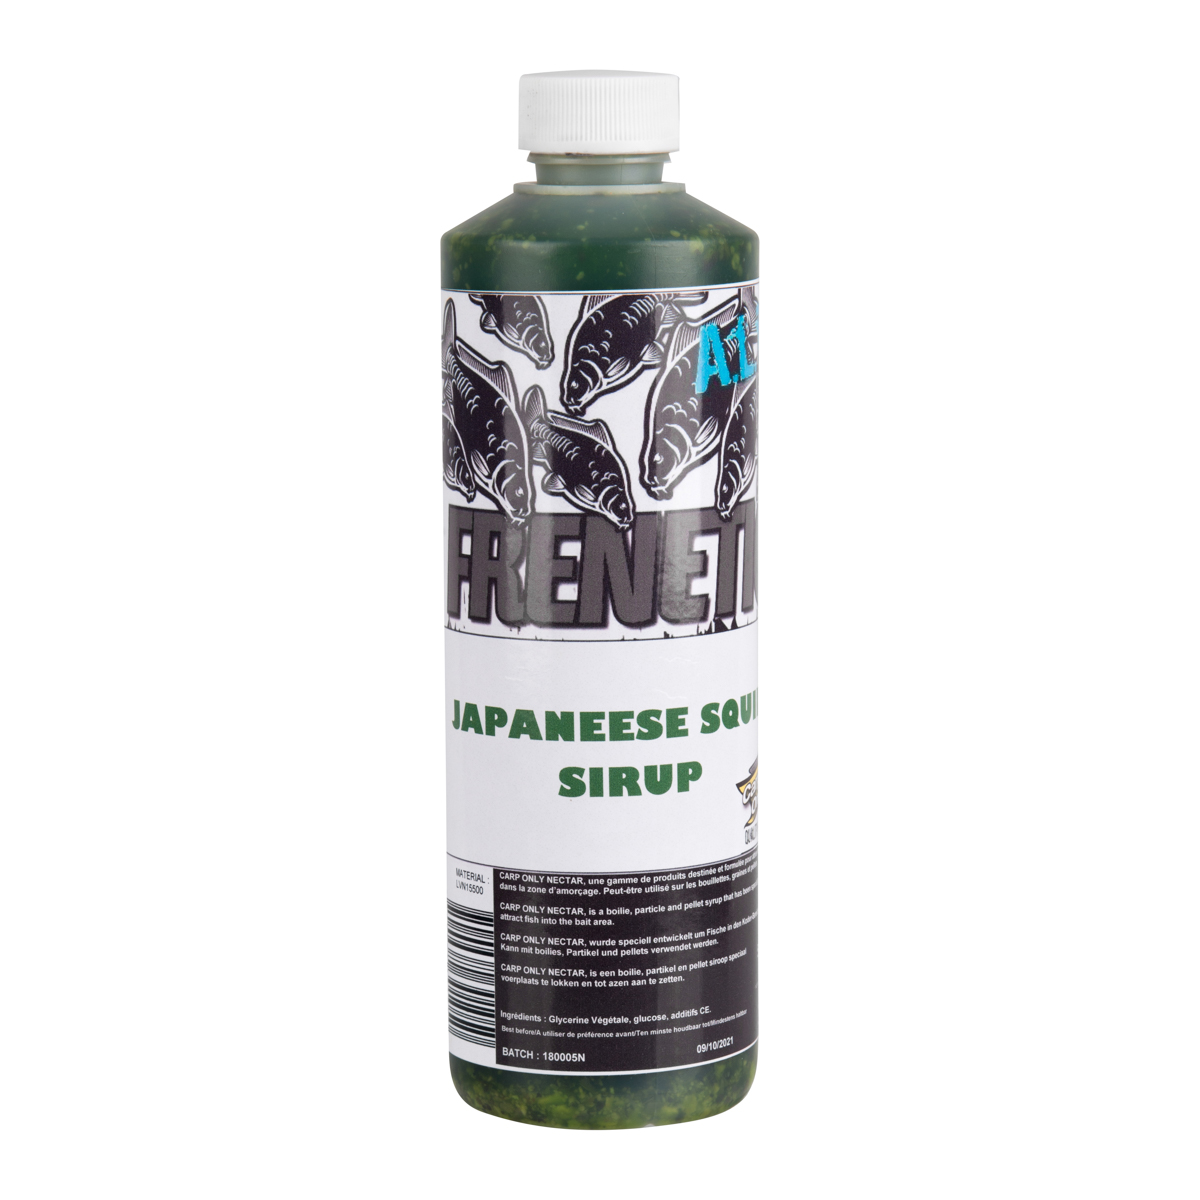 CARP ONLY Sirup Frenetic A.L.T. - Japonská Oliheň 500ml